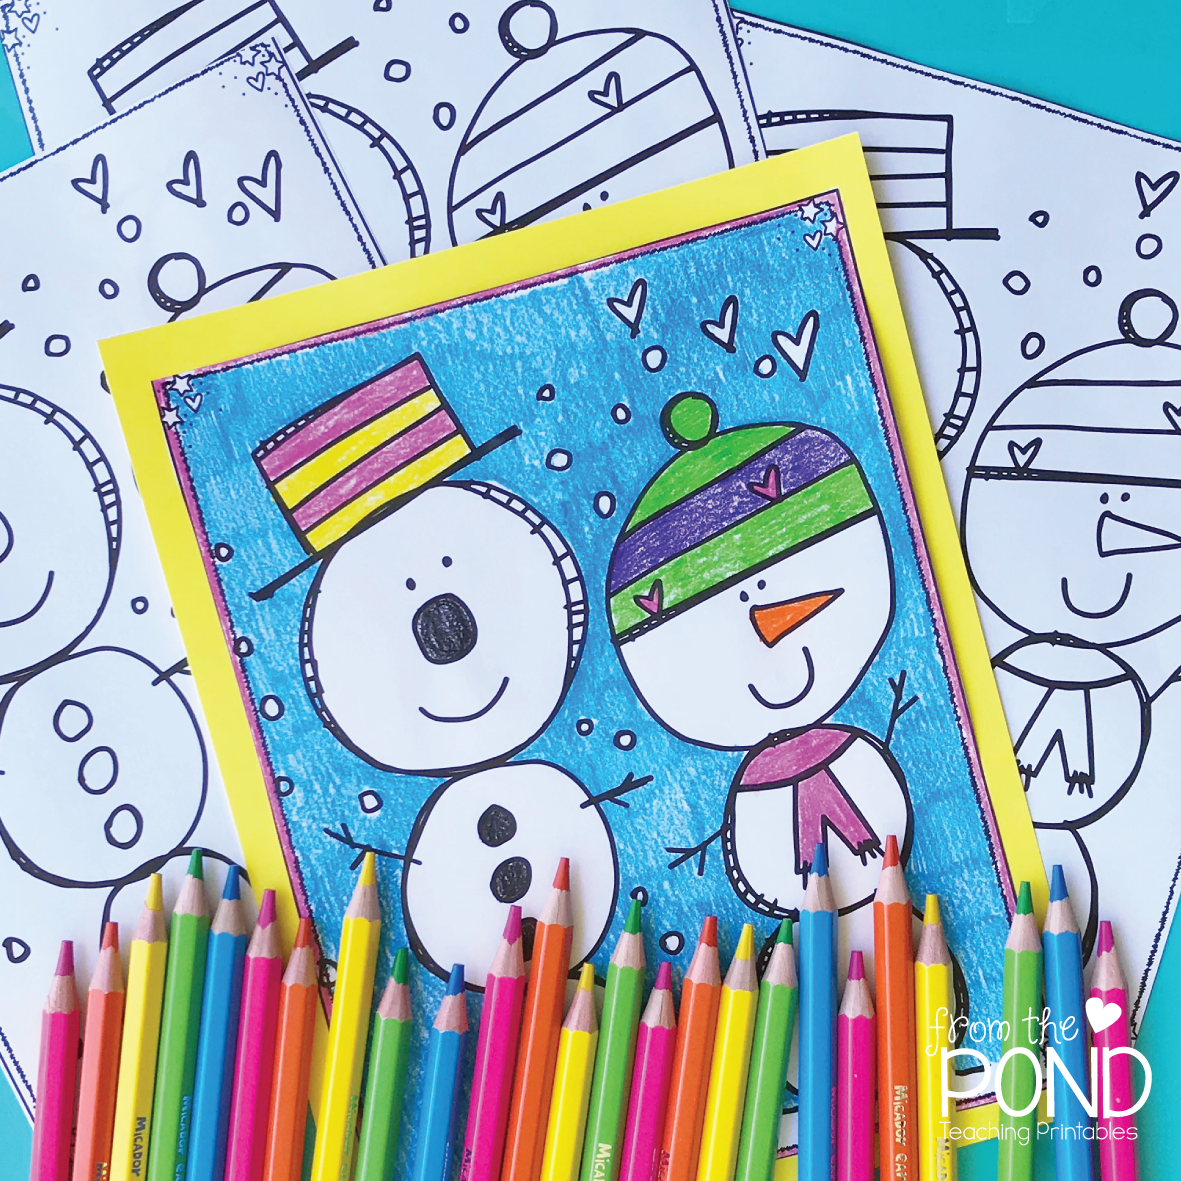 Snowman Coloring Page | From the Pond